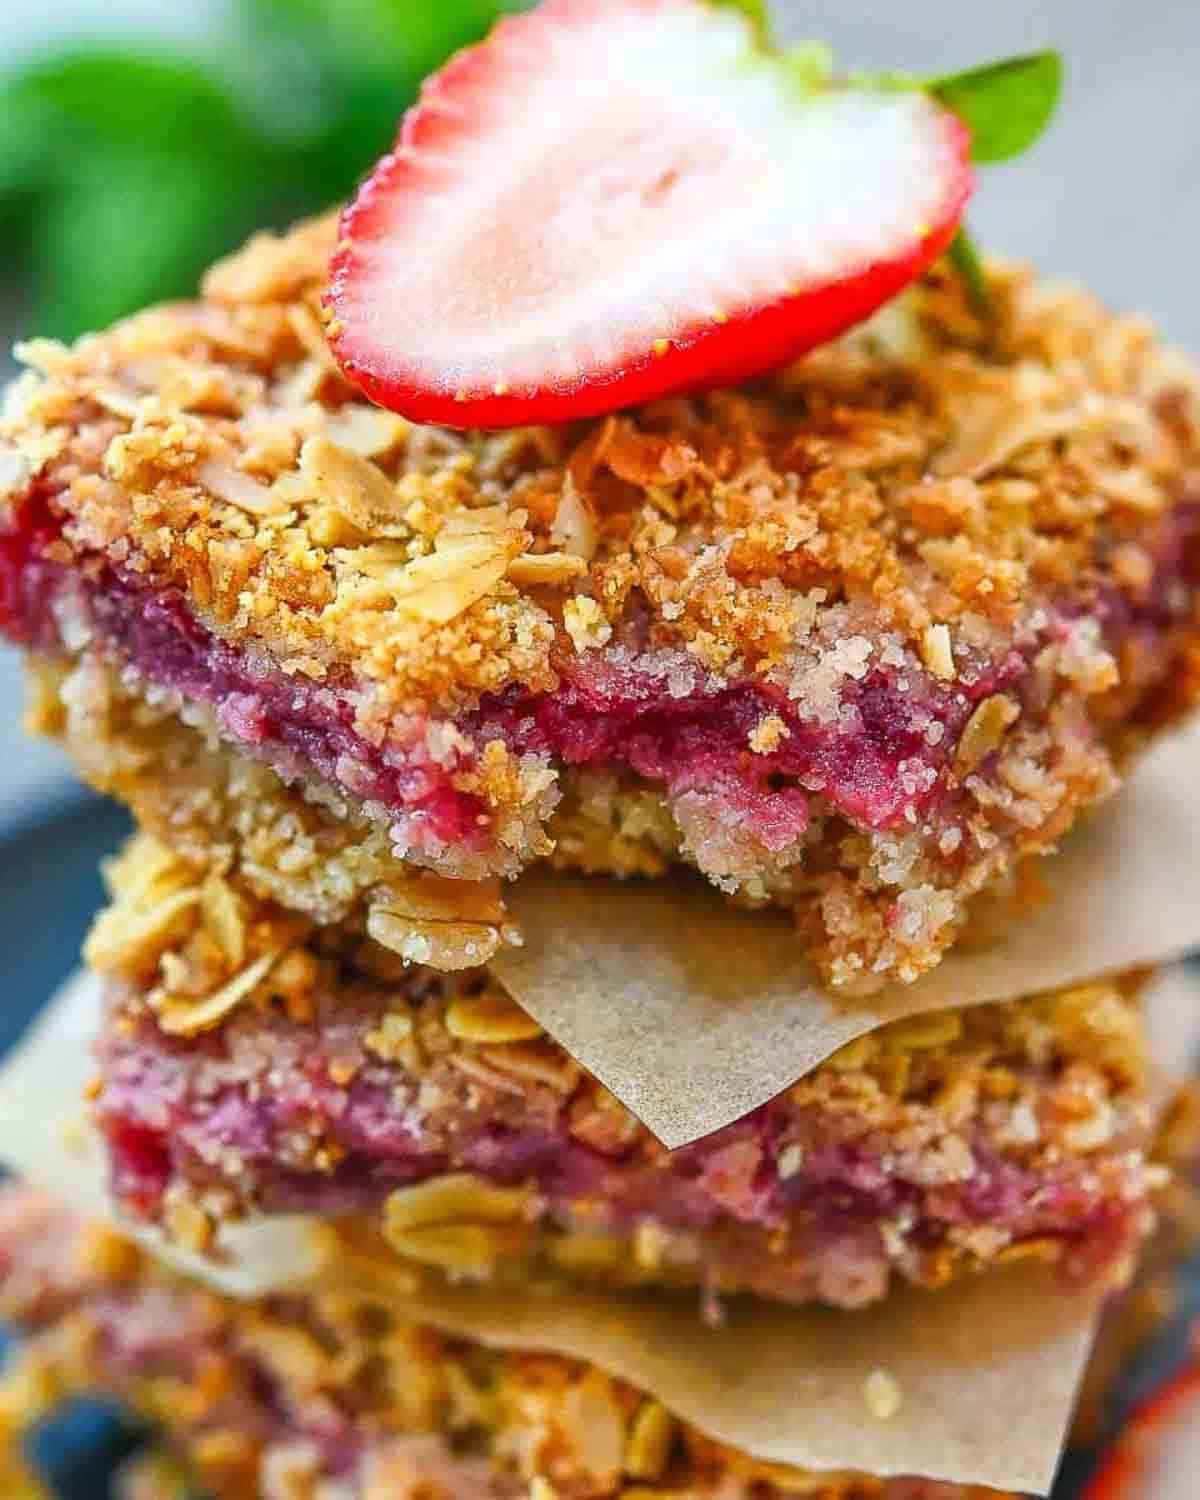 3 oatmeal bars stacked on top with each other with wax paper in between and half a strawberry on top.